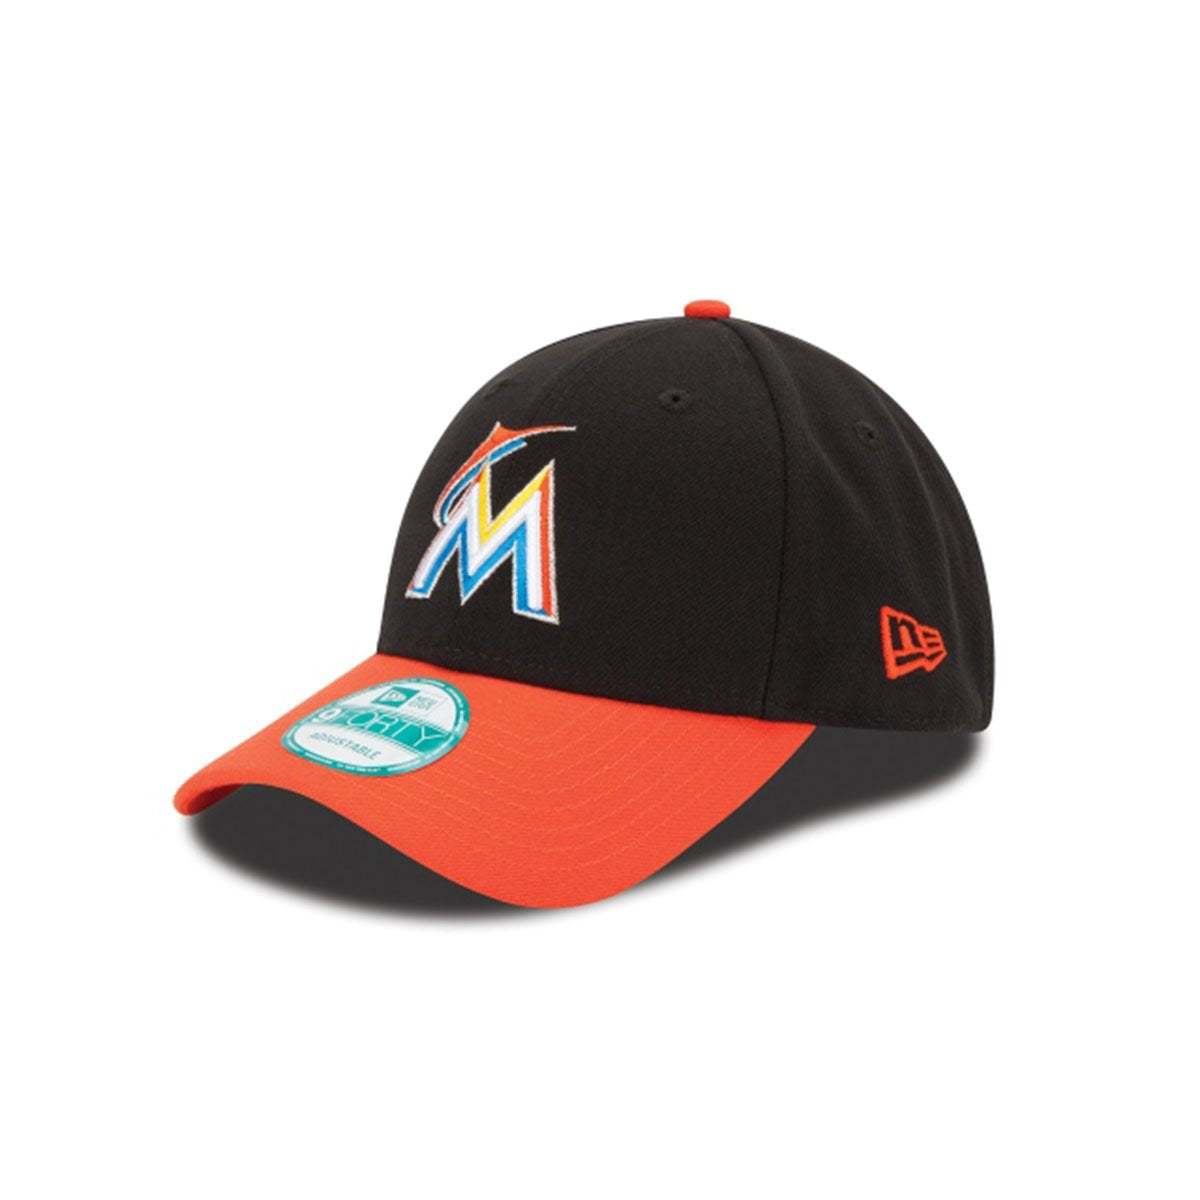 MIAMI MARLINS 9FORTY ADJUSTABLE BLACK/ORANGE